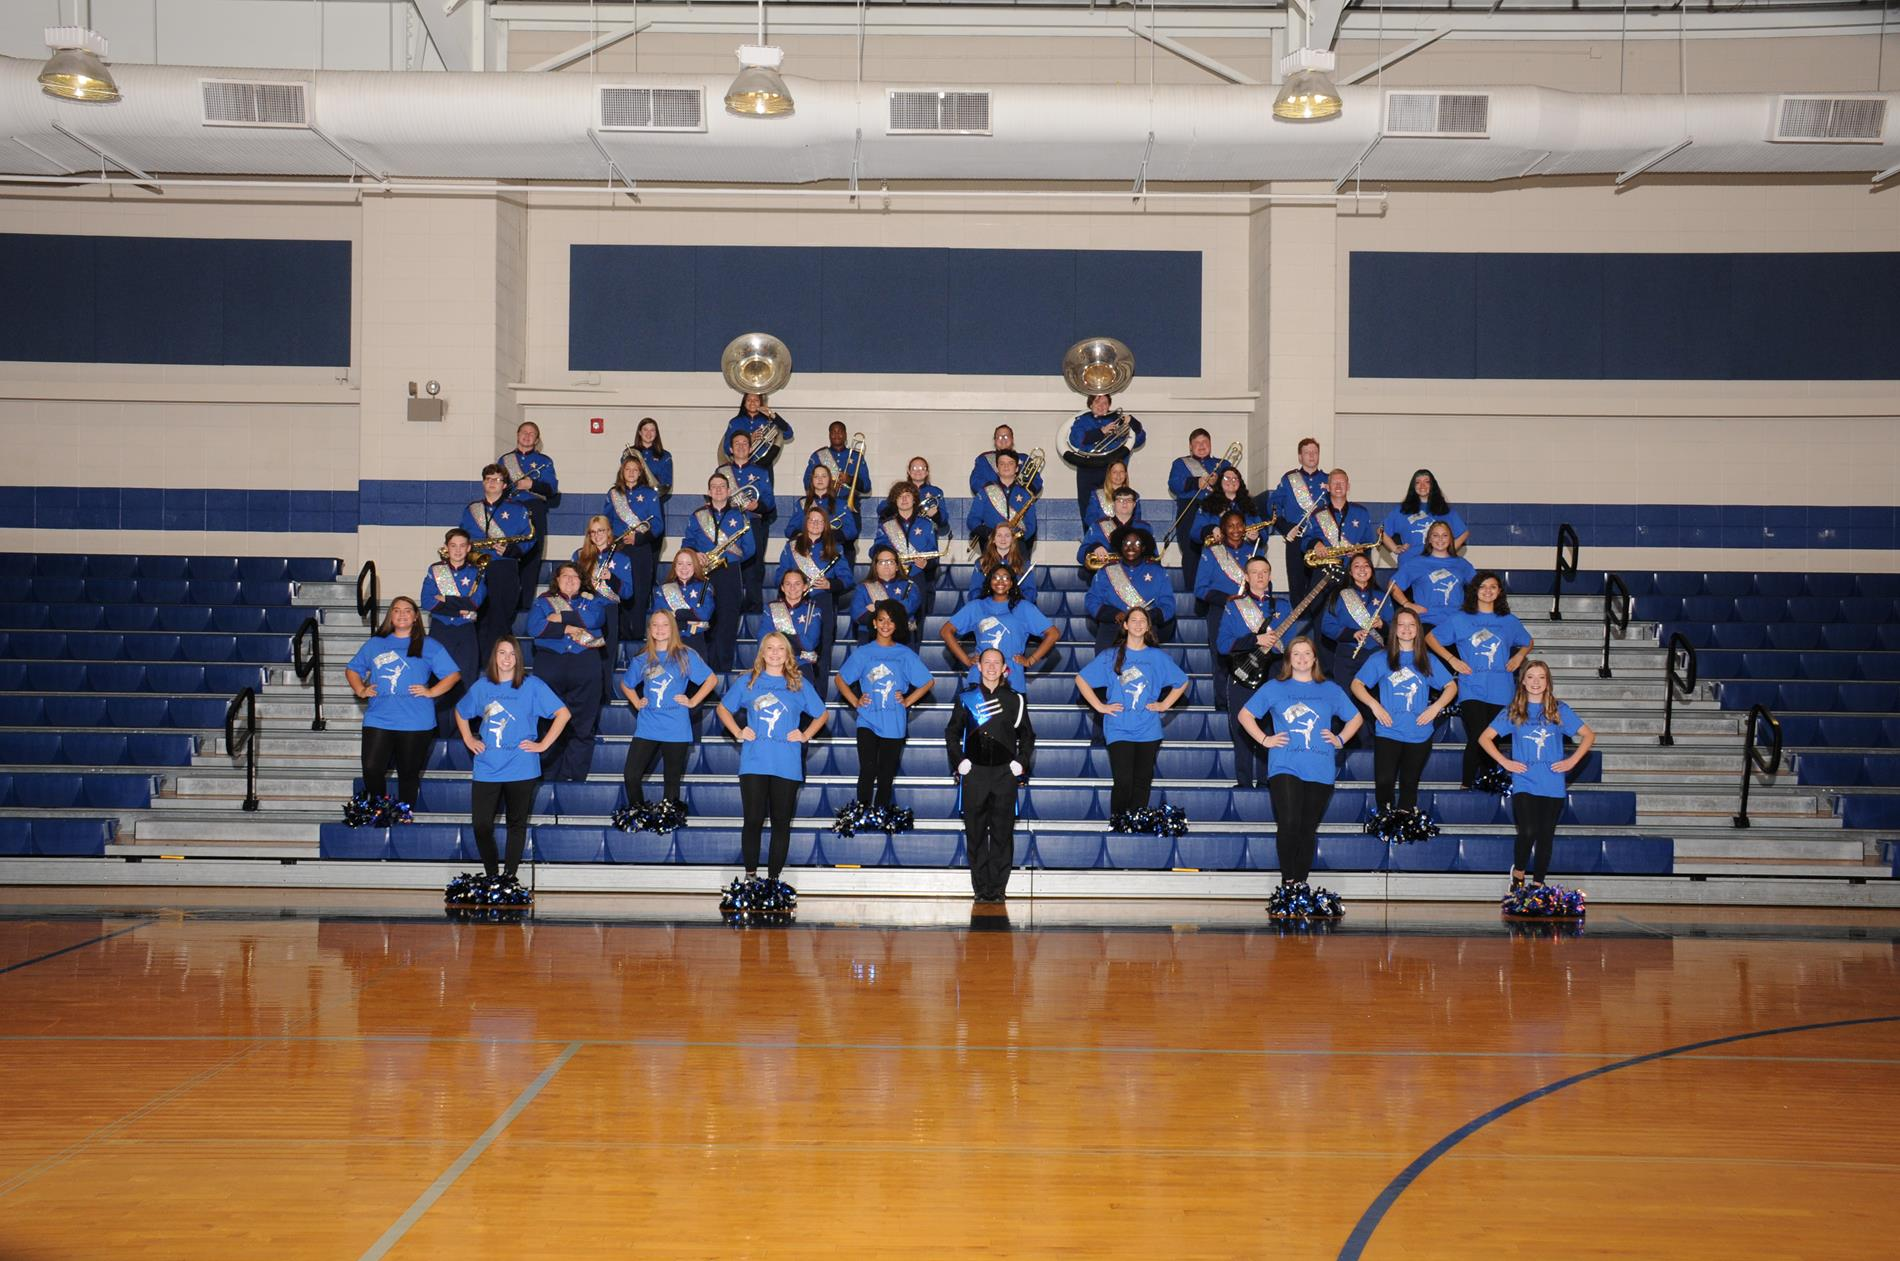 Marbury Northstars Band